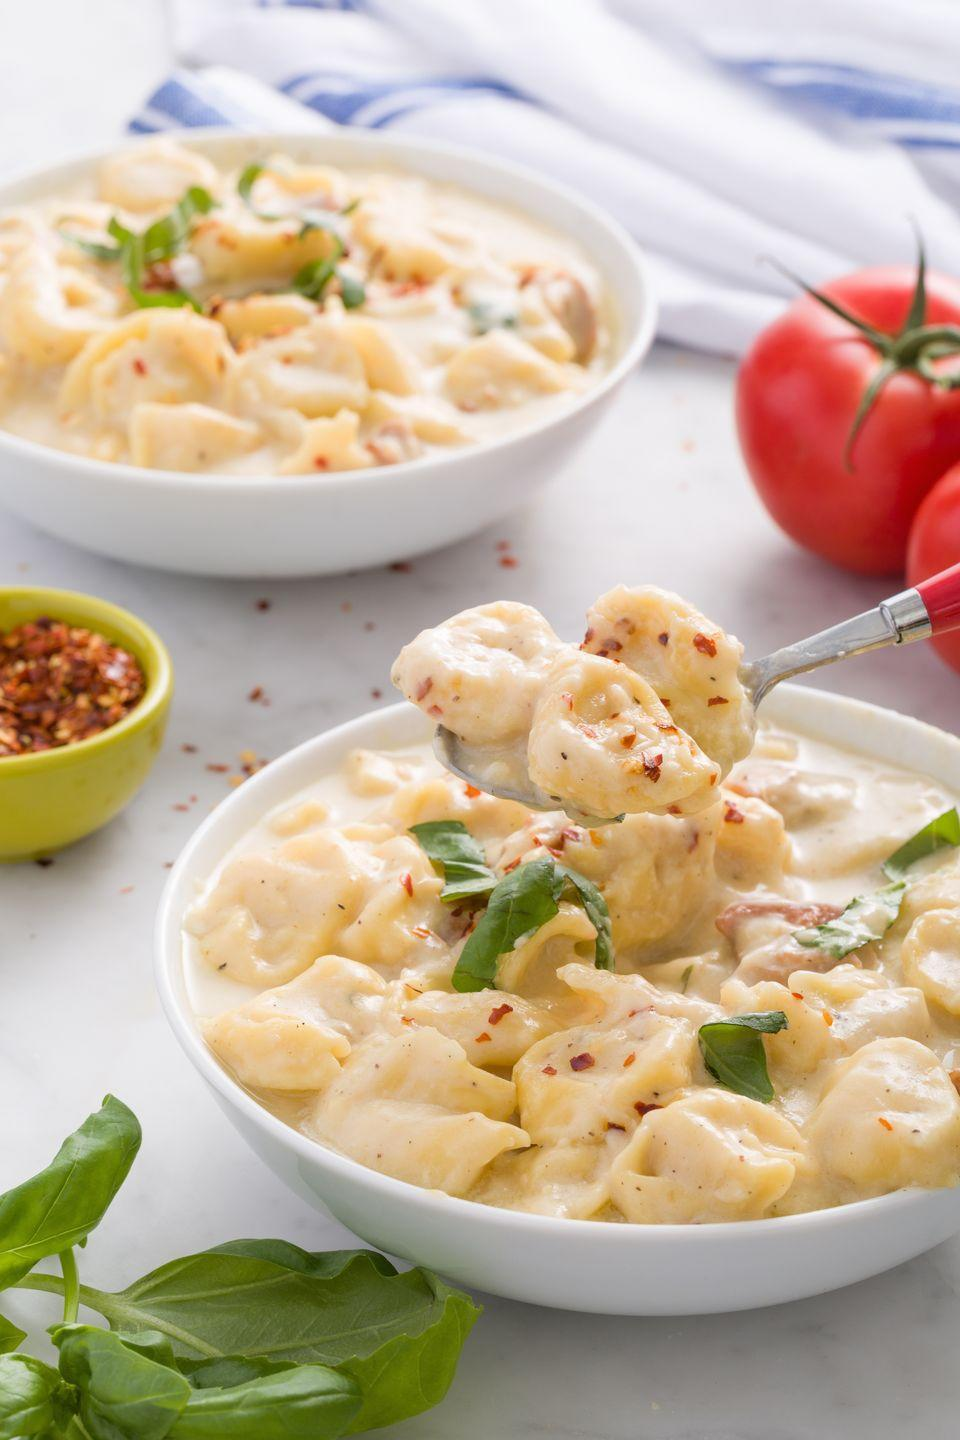 "<p>This is basically an excuse to eat pasta and pretend like it's sort of healthy.</p><p>Get the recipe from <a href=""https://www.delish.com/cooking/recipe-ideas/recipes/a44743/cheesy-chicken-alfredo-soup-recipe/"" rel=""nofollow noopener"" target=""_blank"" data-ylk=""slk:Delish"" class=""link rapid-noclick-resp"">Delish</a>.</p>"